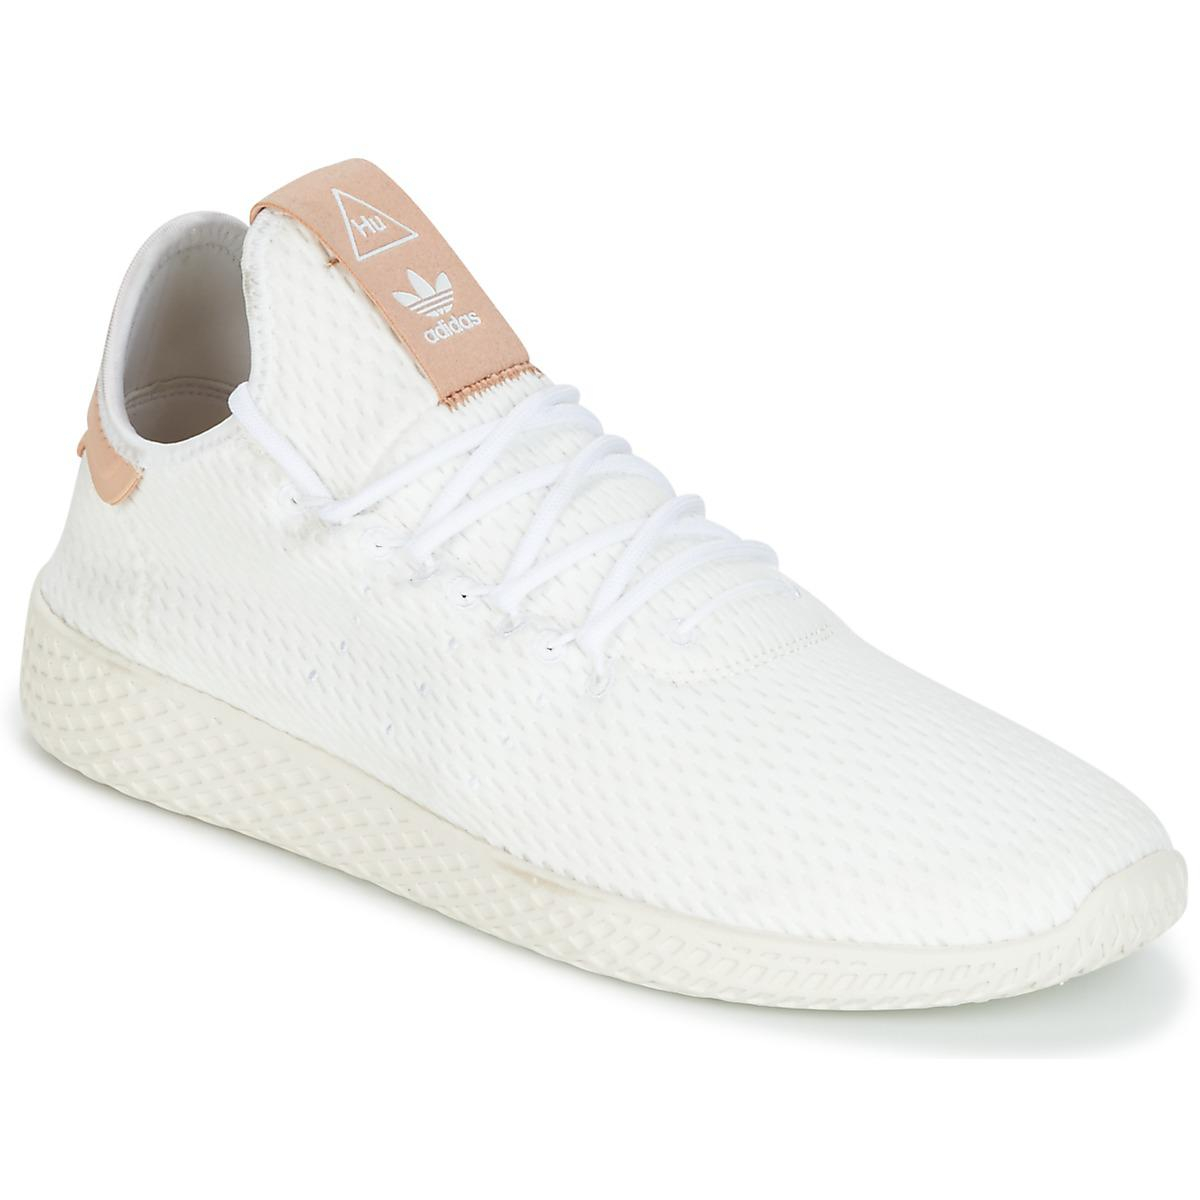 e54311707c7f6 adidas Pharrell Williams Tennis Hu Men s Shoes (trainers) In White ...